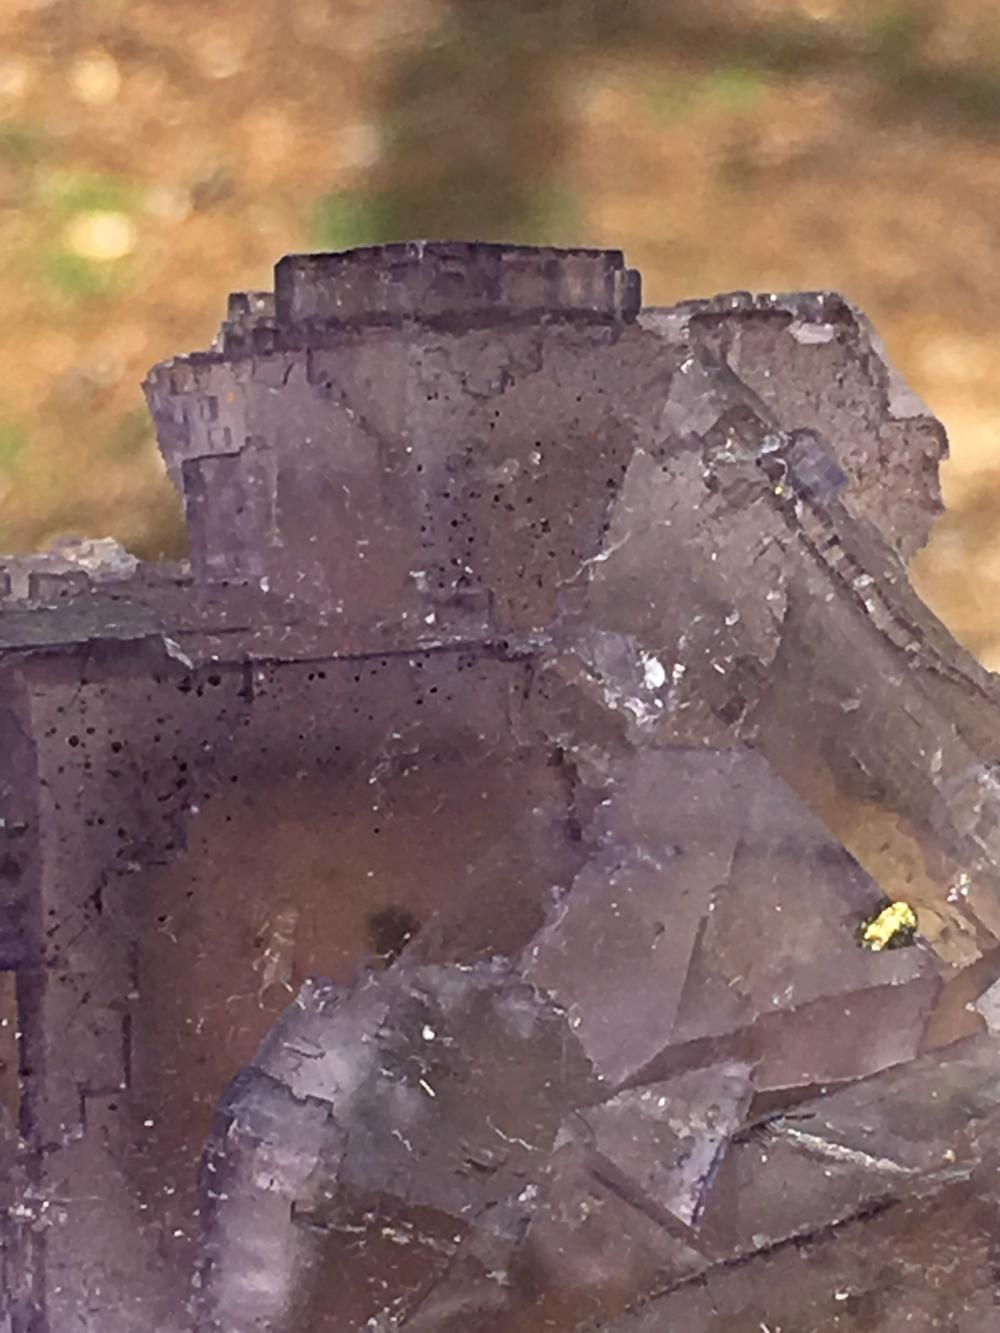 Lot 28: Fluorite, Rock, Crystla, Natural, Collectible, Mineral, Specimen